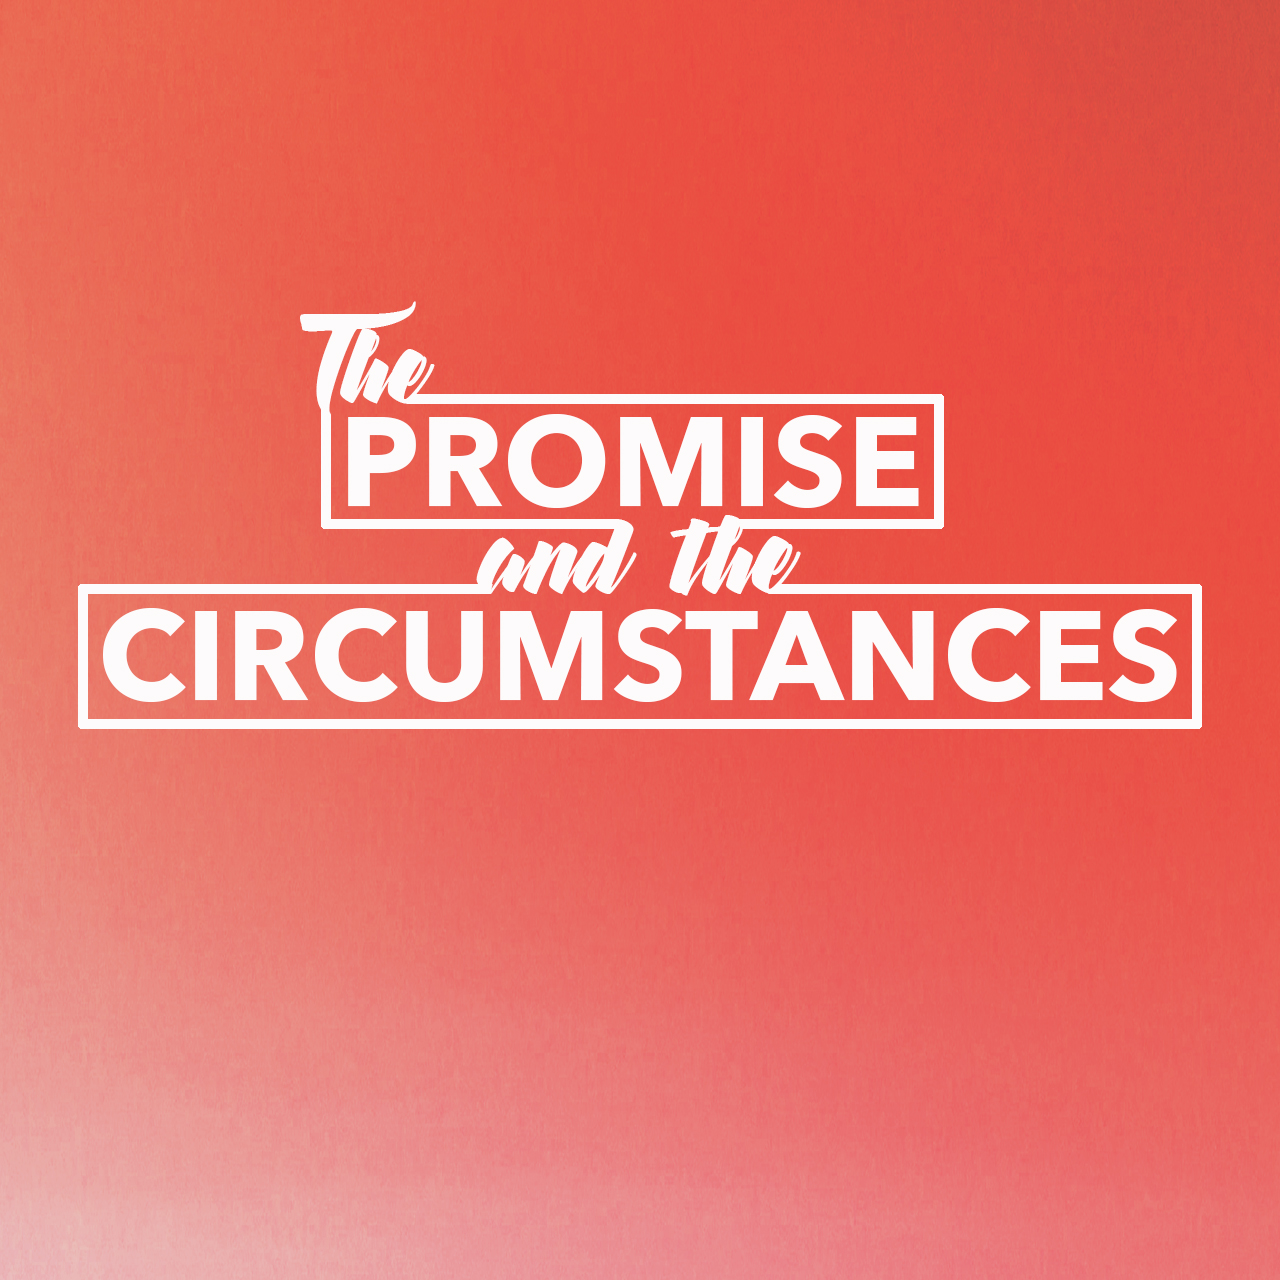 The Promise and the Circumstances